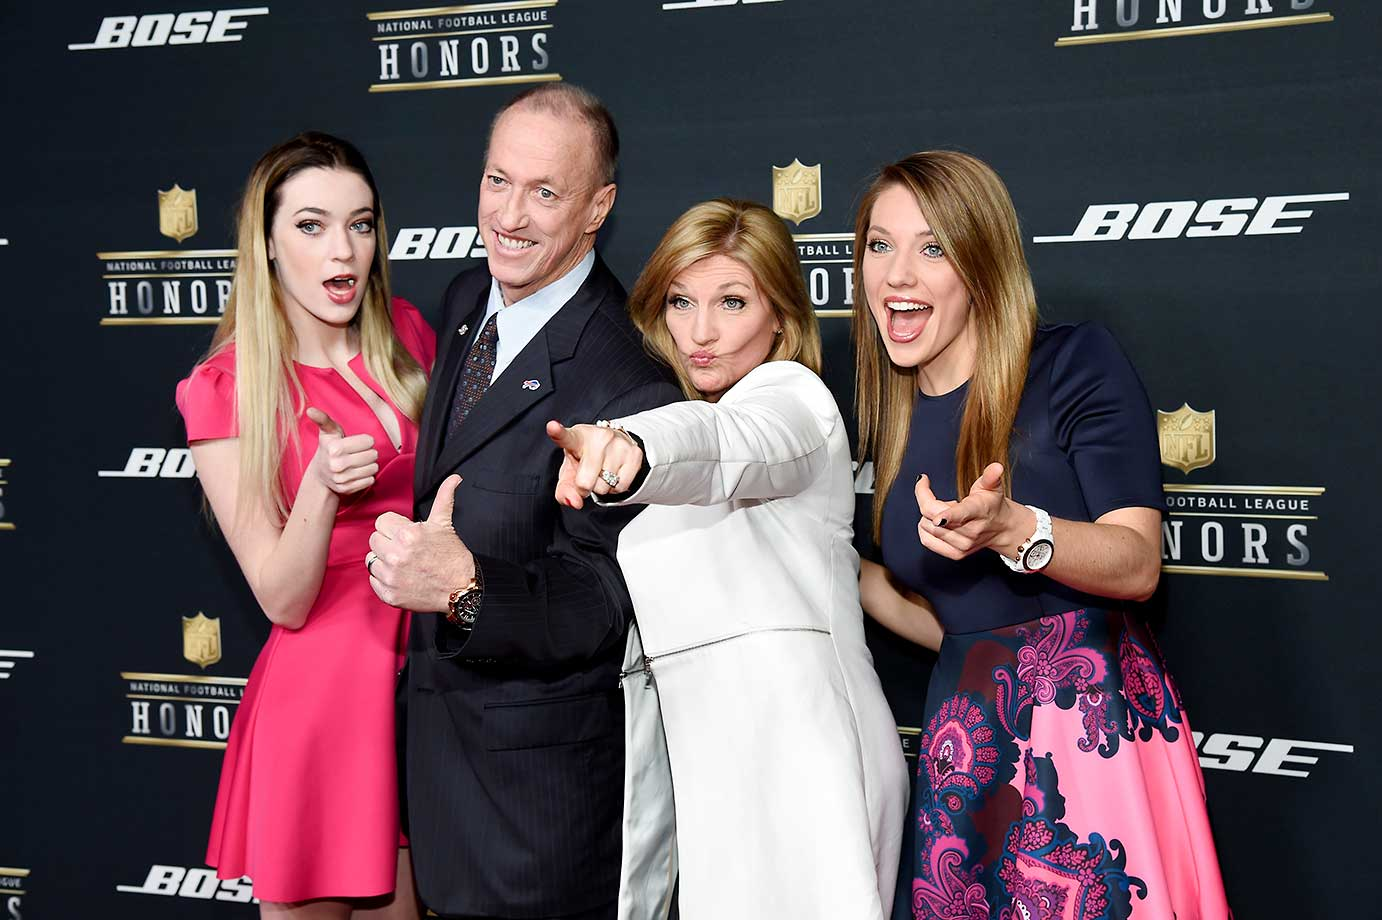 Former NFL player Jim Kelly with Jill Kelly, Camryn Kelly and Erin Kelly at the 5th annual NFL Honors program.